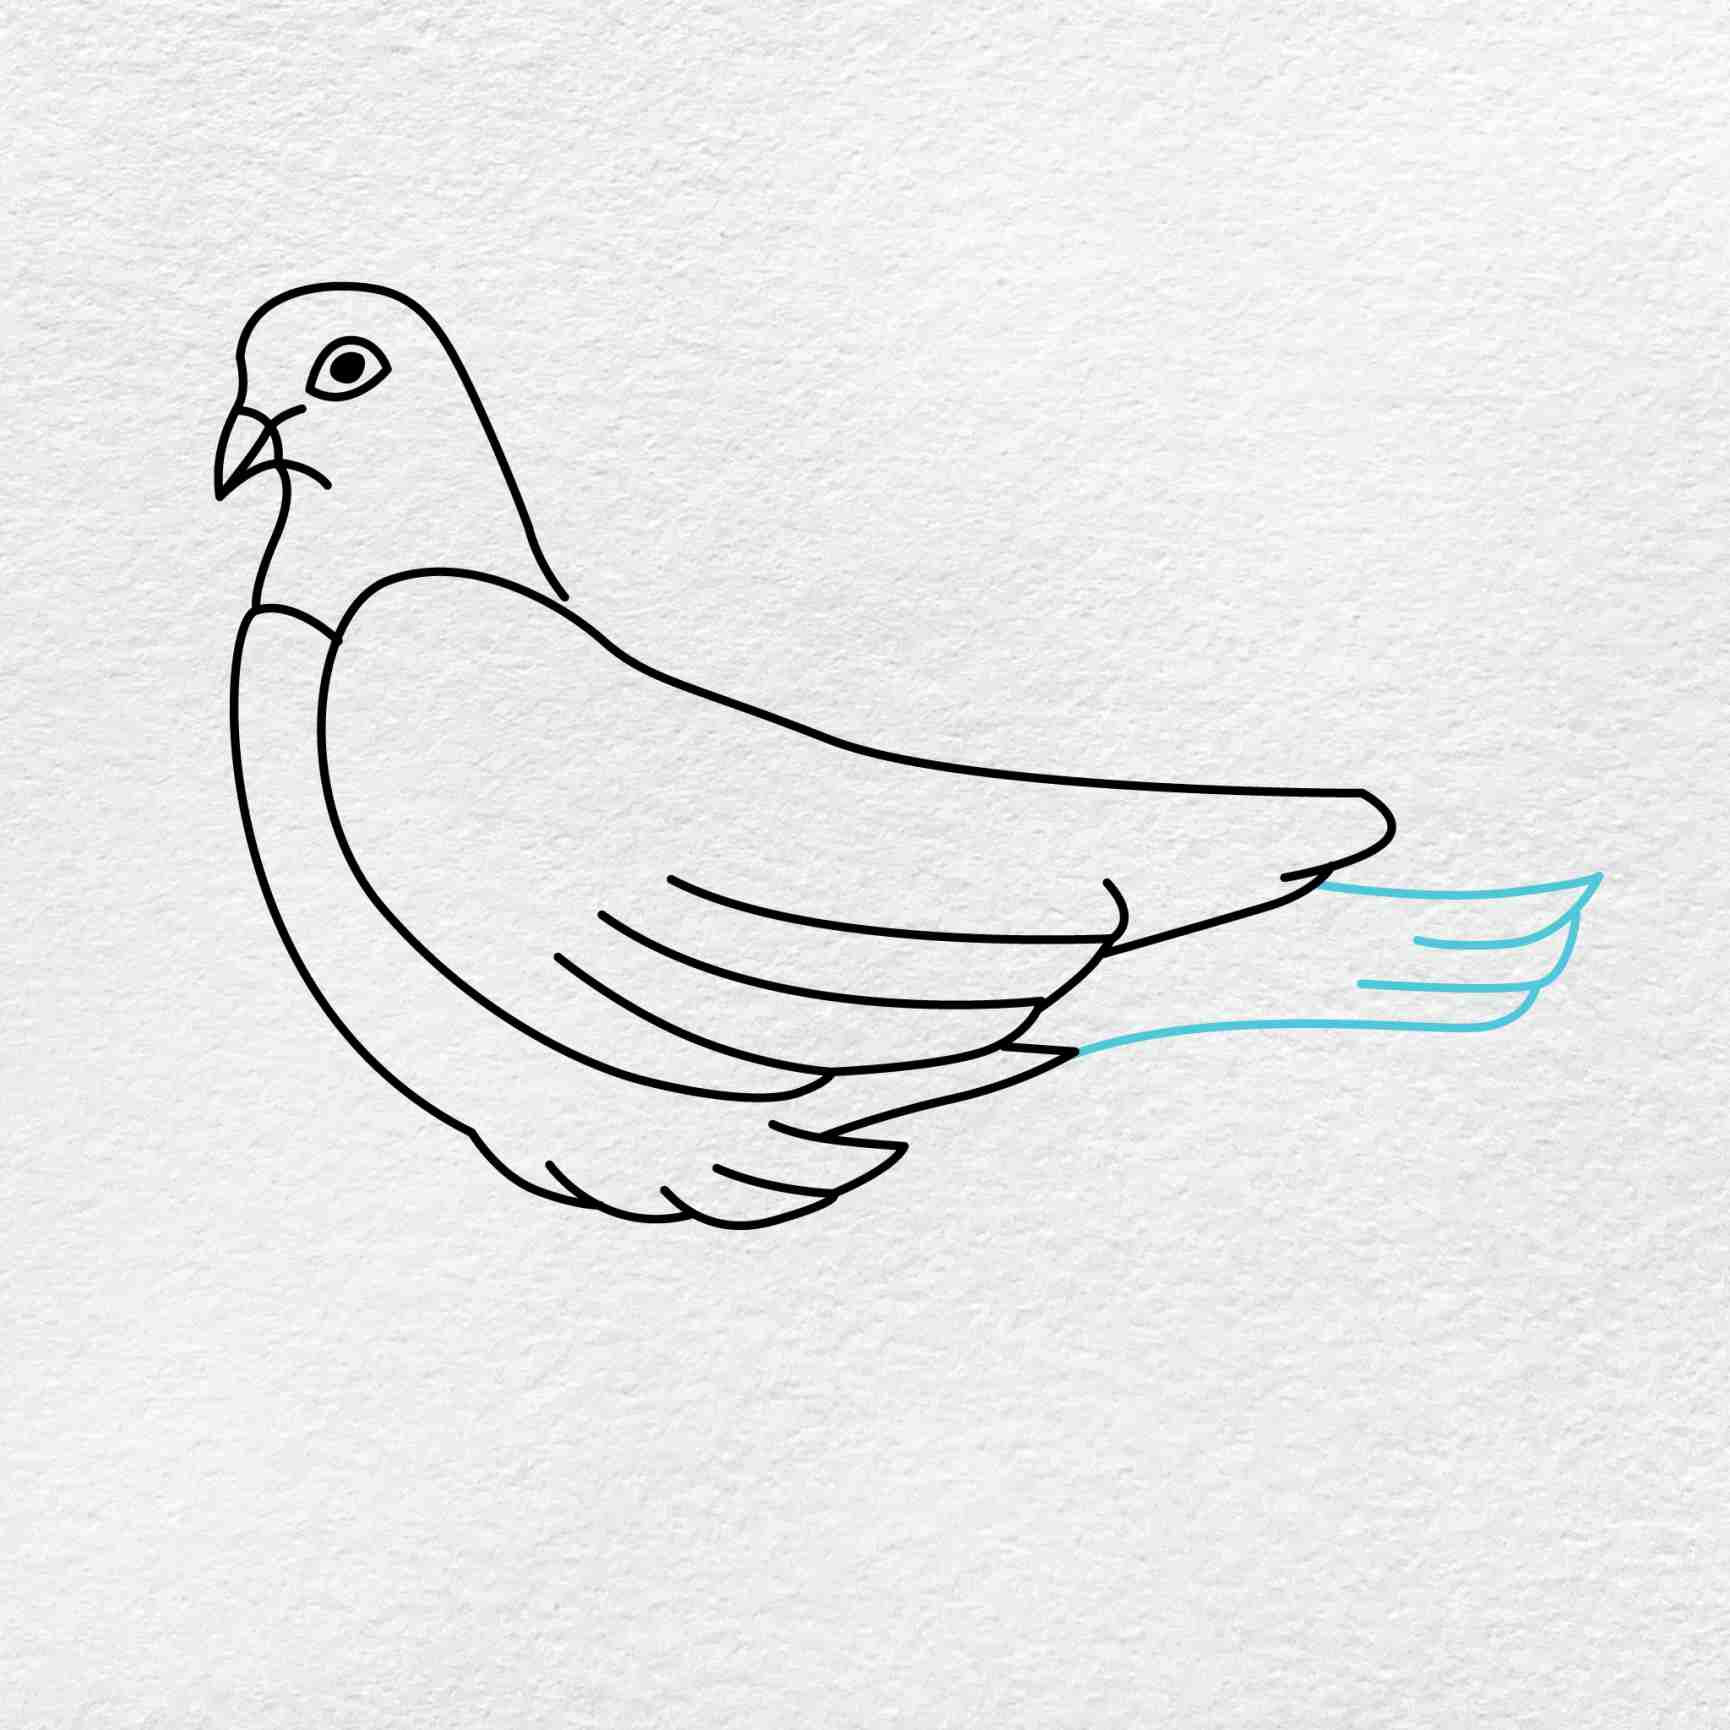 Dove Drawing: Step 4